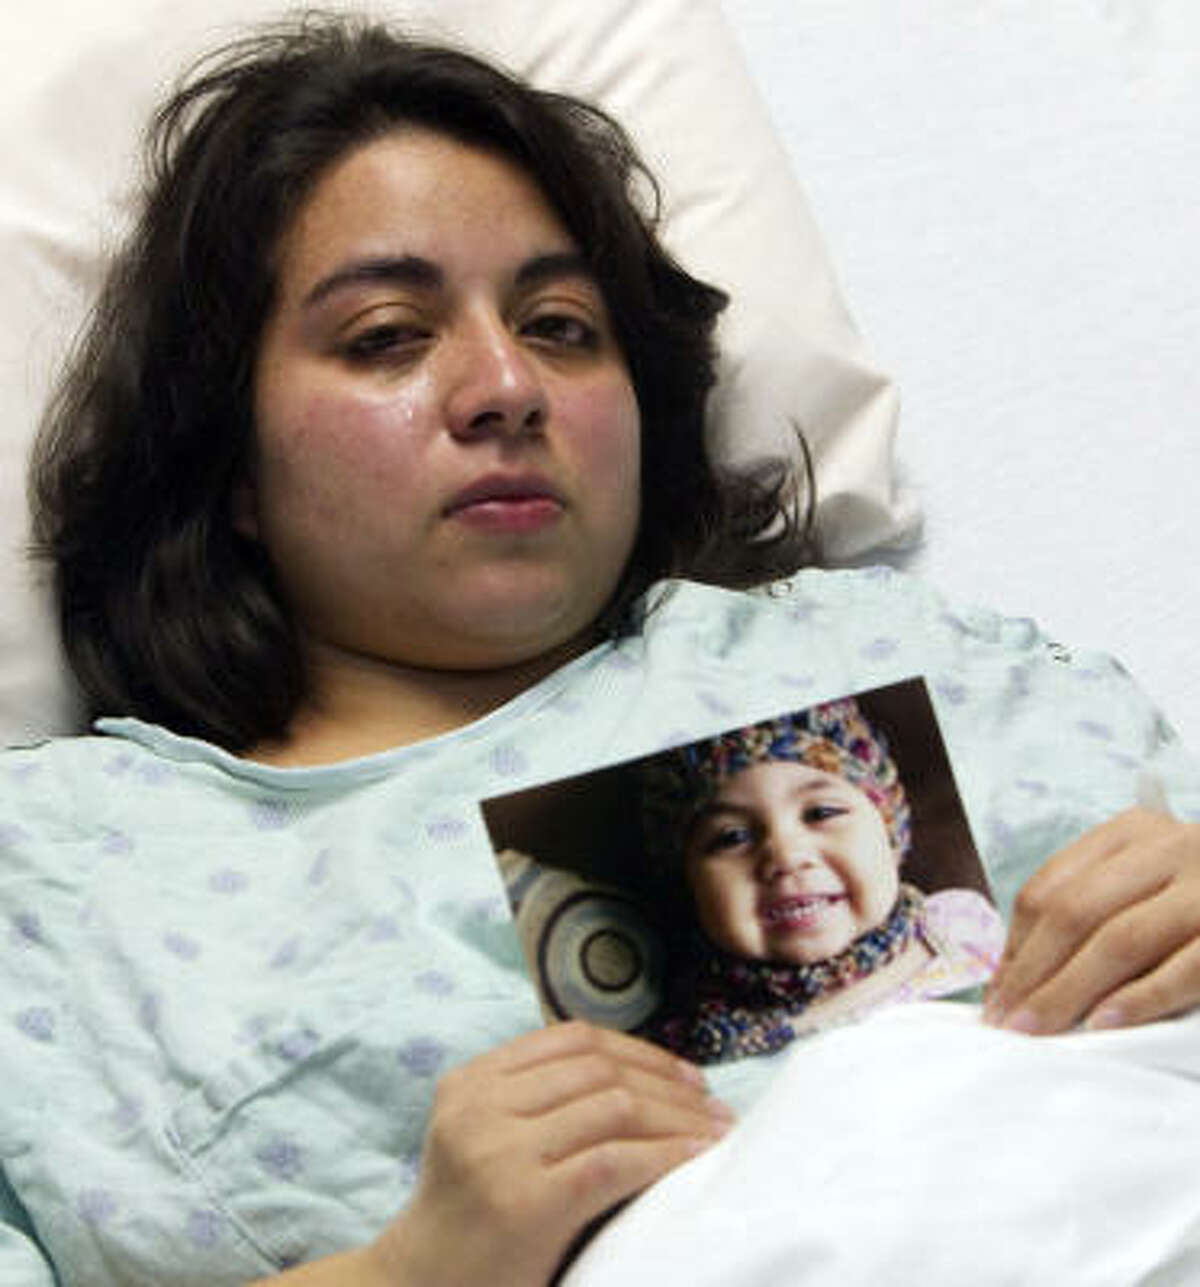 Maria Sanchez holds a photo of her daughter Melissa Aguillon, 3, at Ben Taub General Hospital in Houston last week. A tumor is limiting the use of her arms and legs.